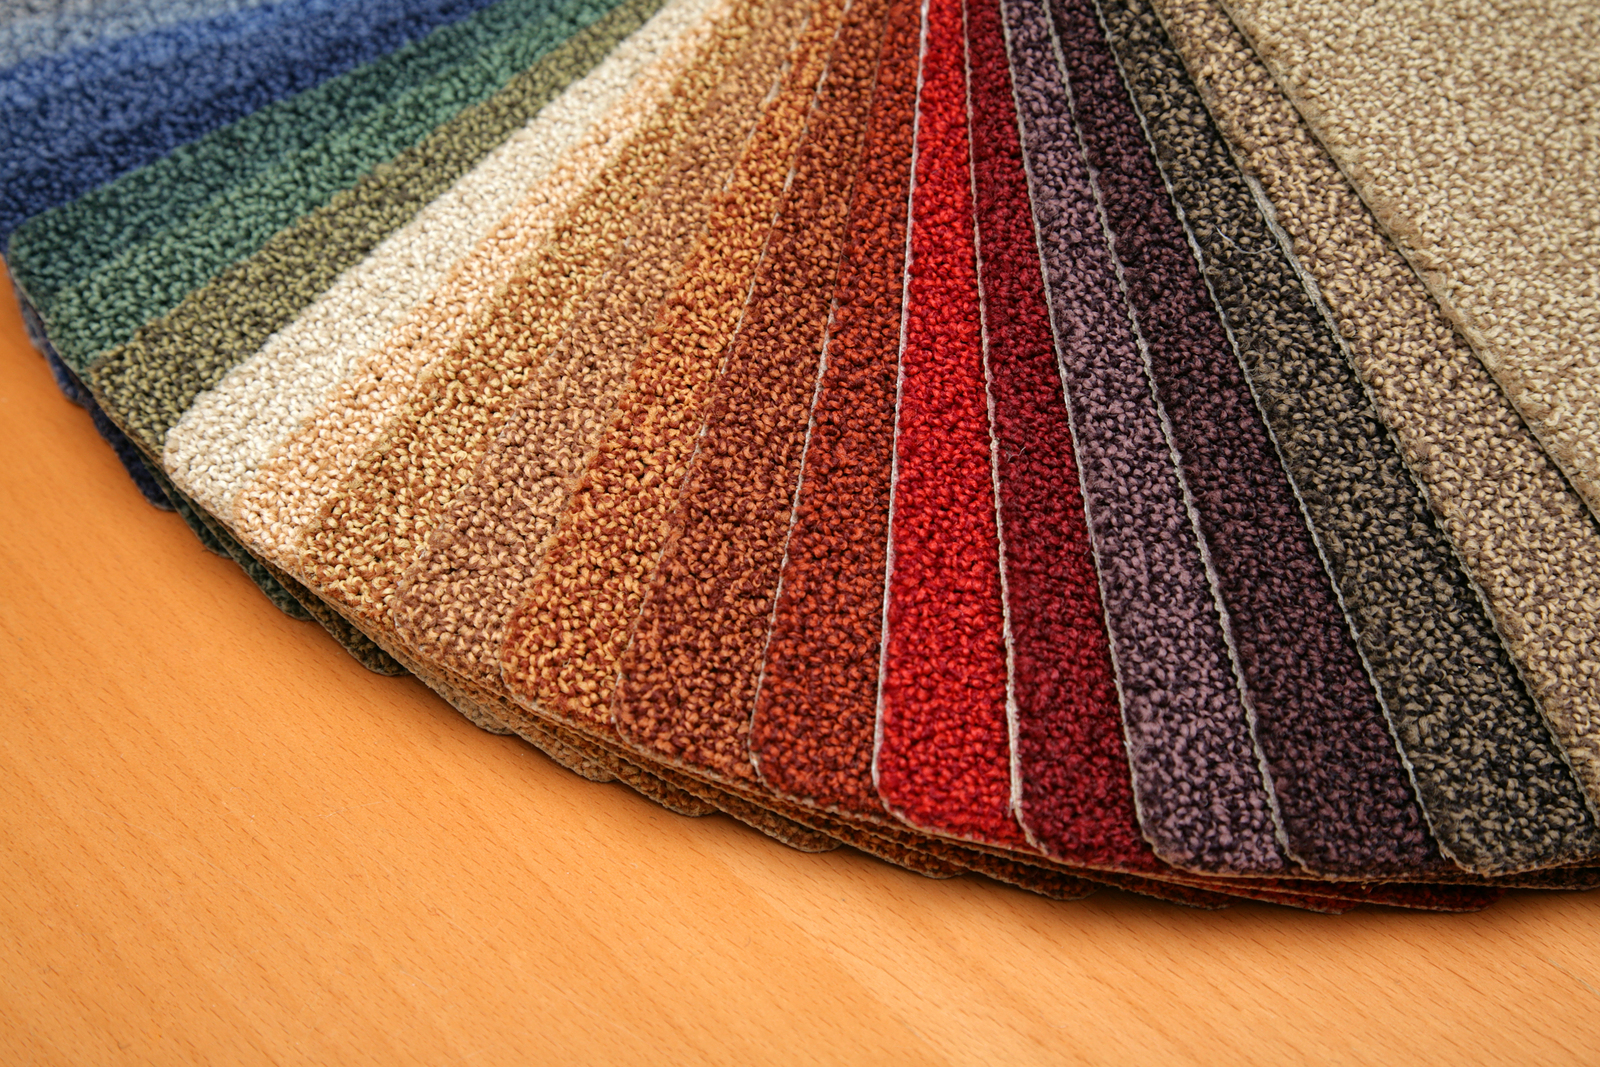 Dr house cleaning different types of carpets part 4 for Different types of carpets with pictures